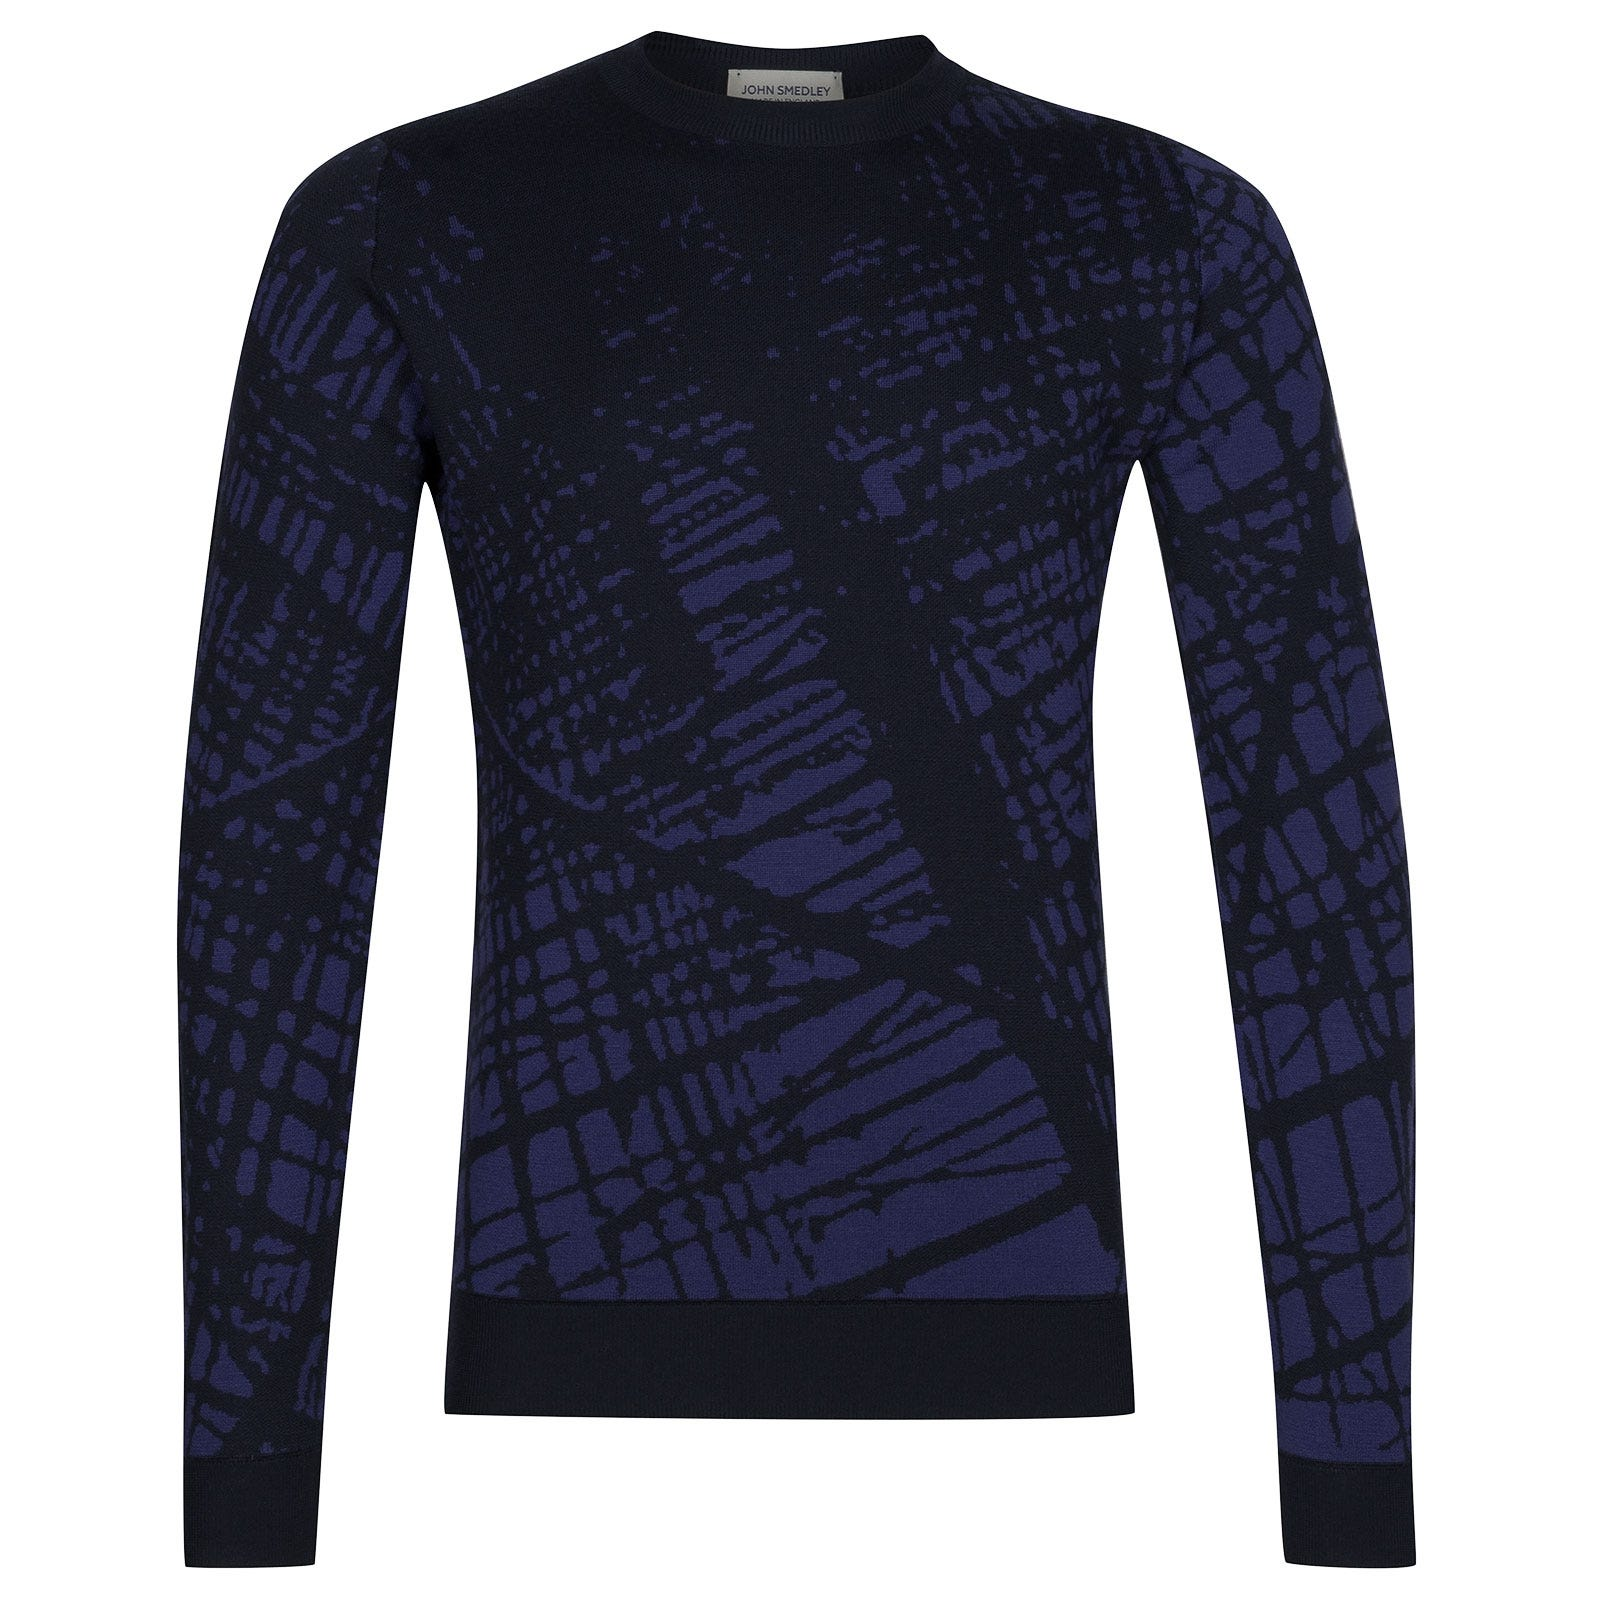 John Smedley Sagan Extra Fine Merino Wool Pullover in Midnight-XL